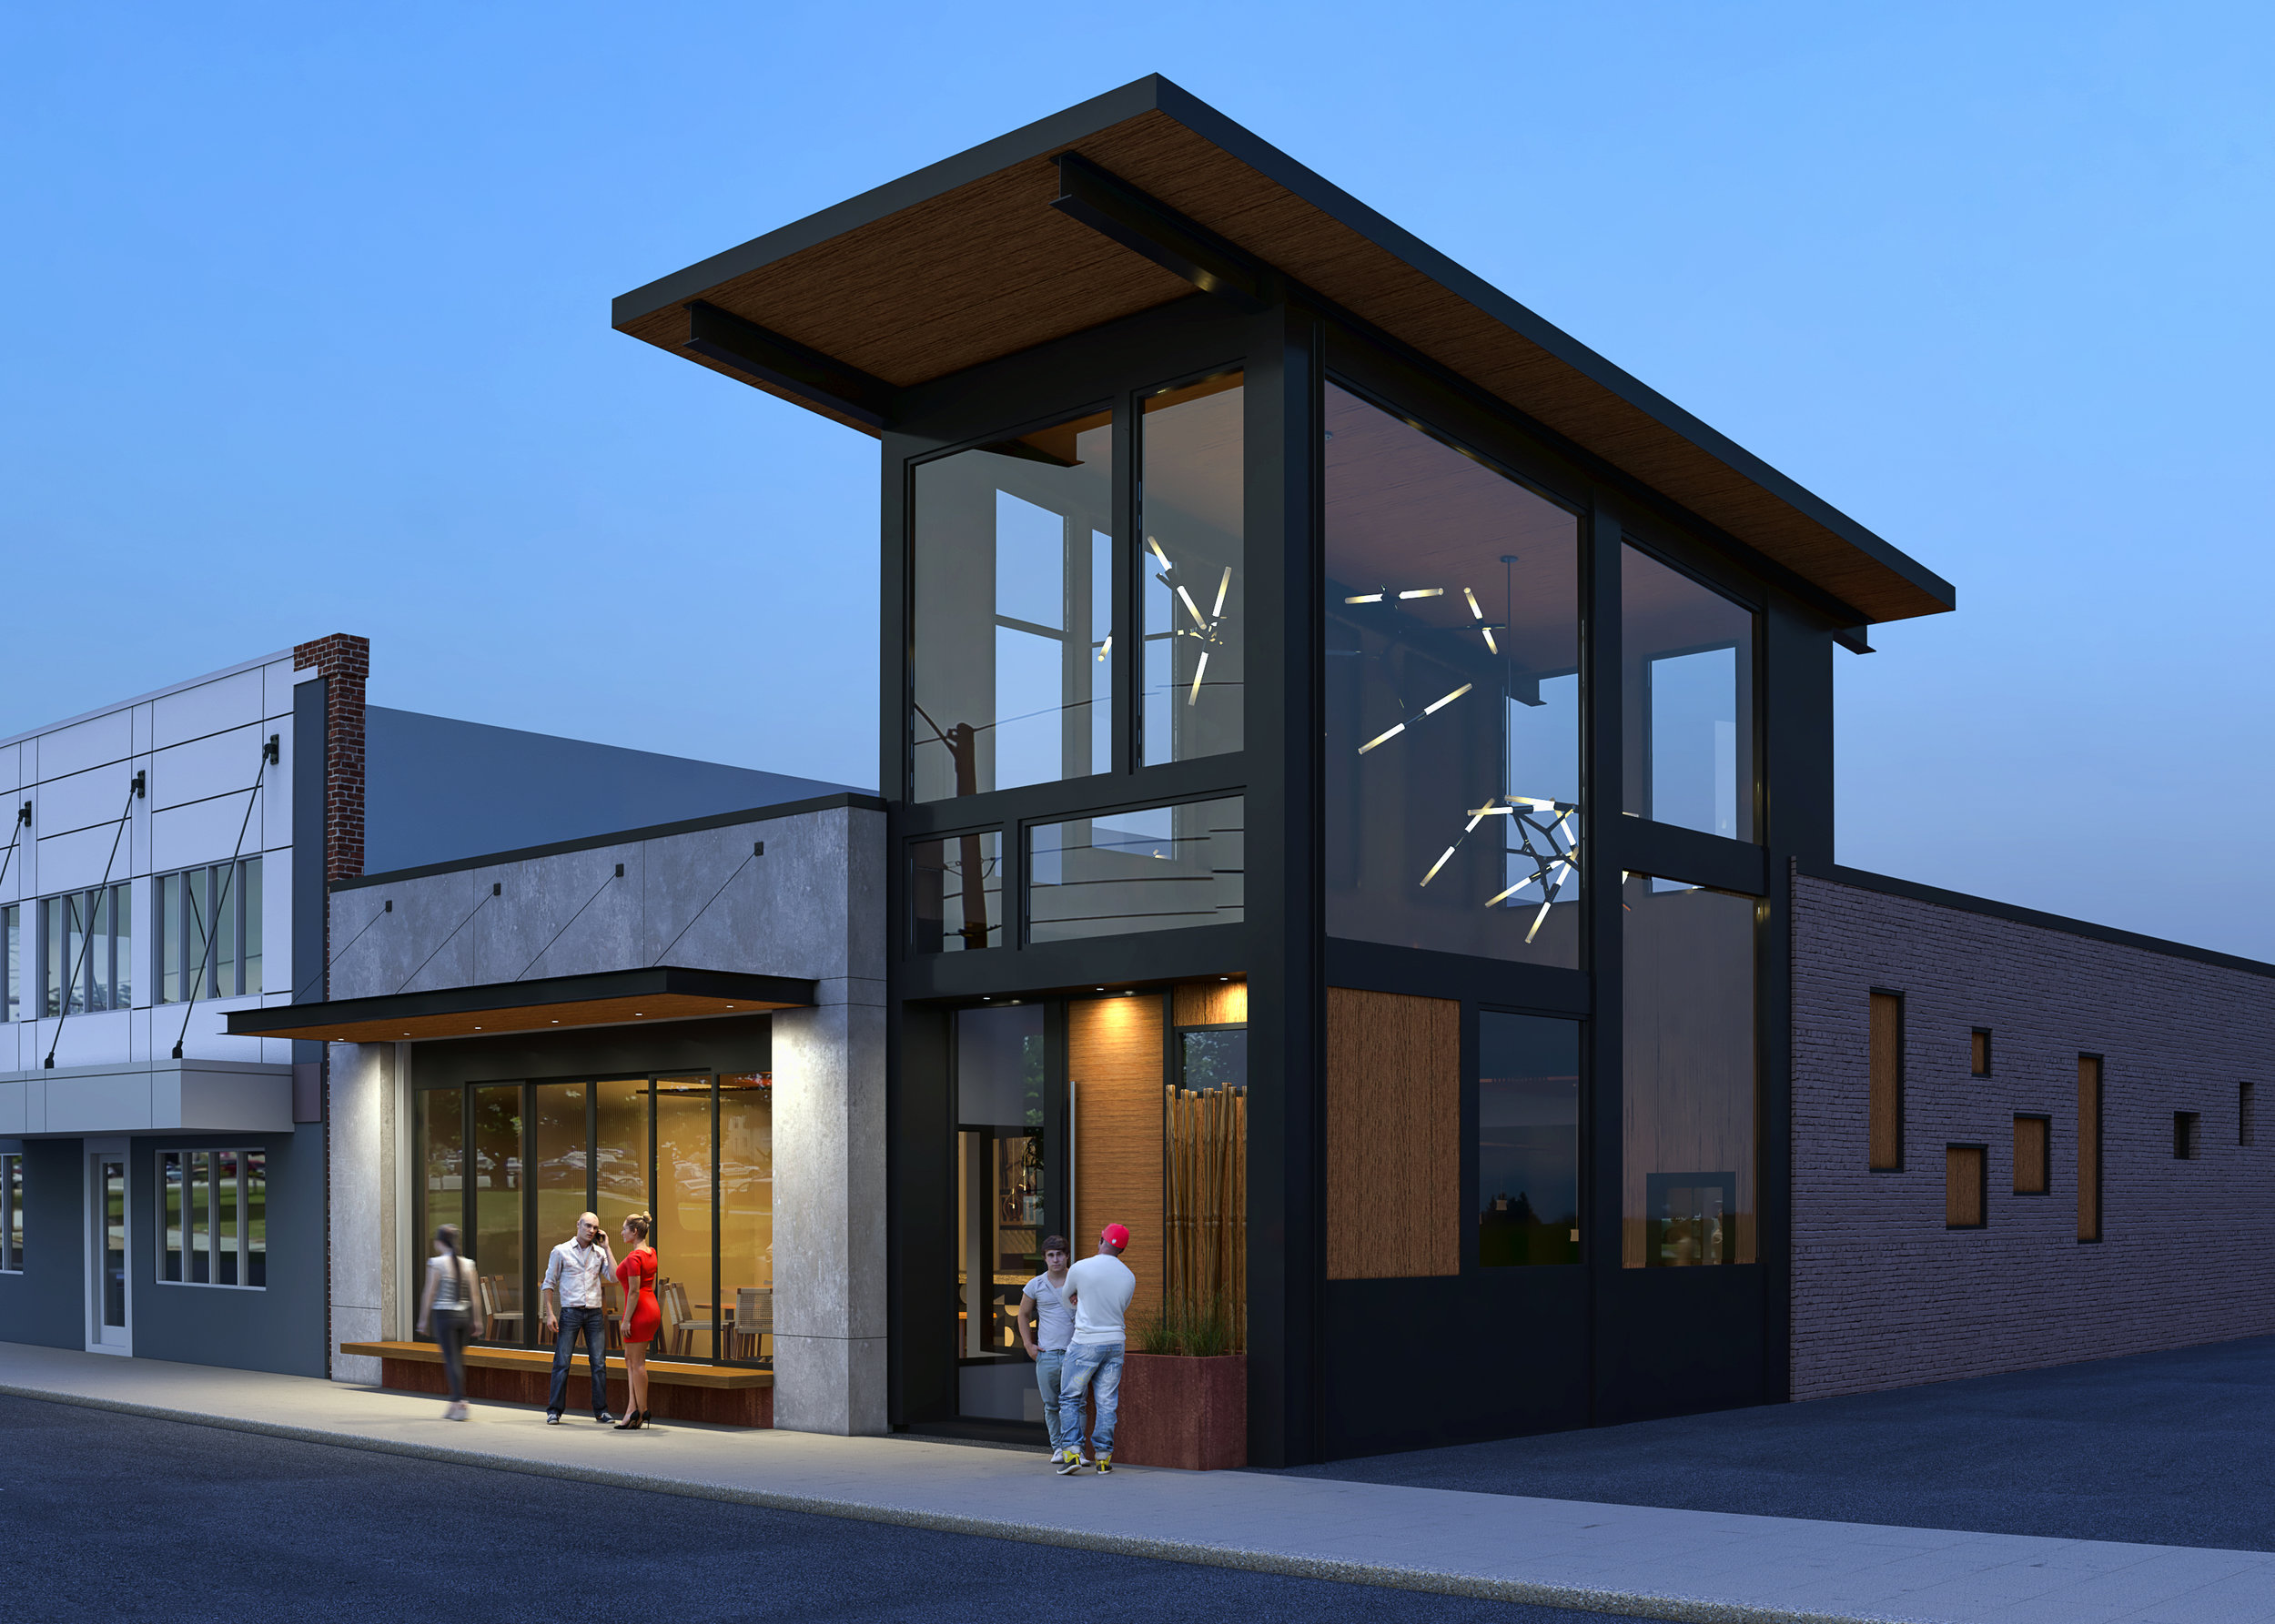 Perch's Exterior Rendering by Johannas Design Group